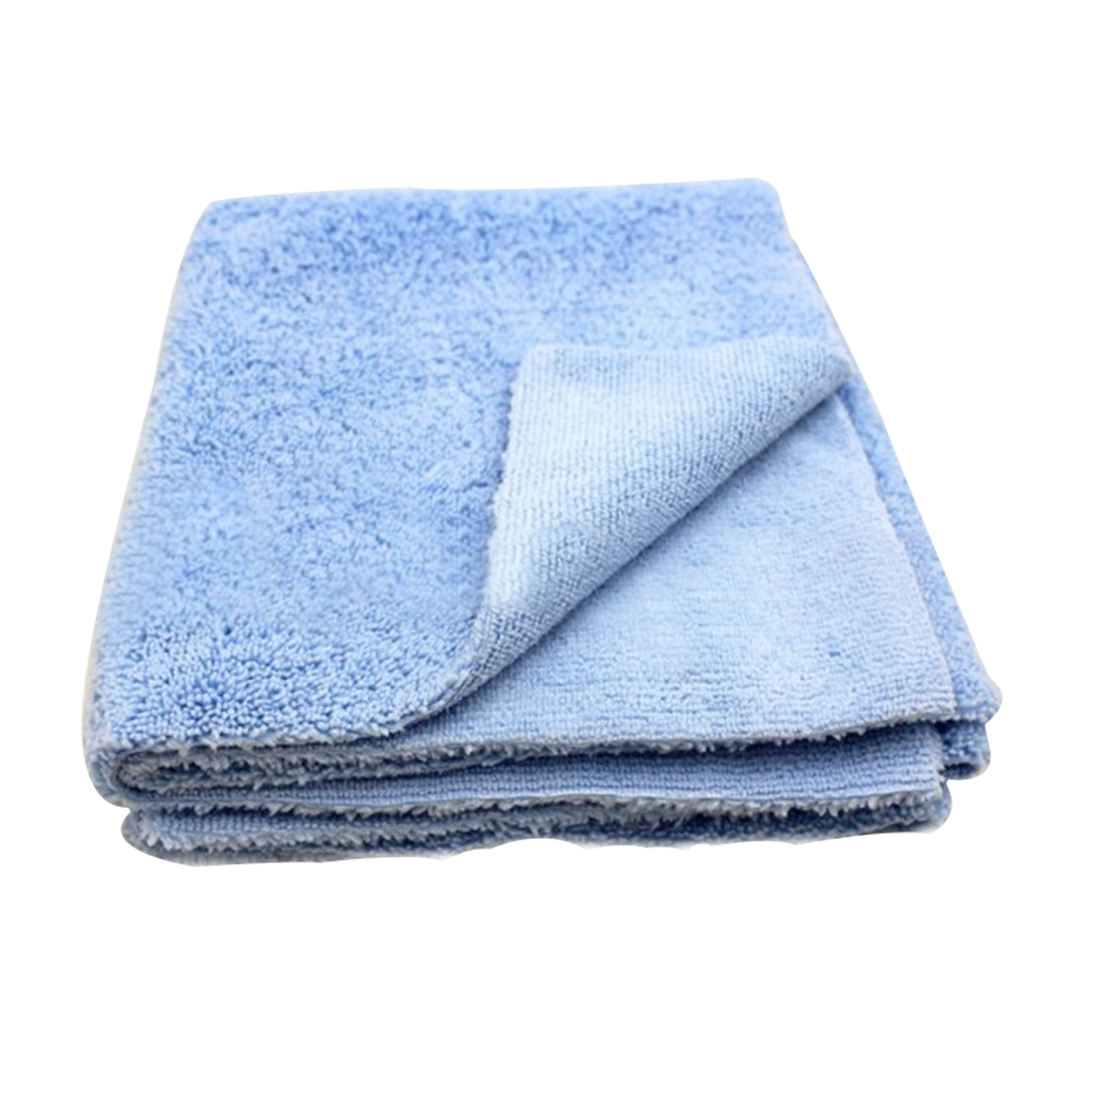 BU-Bauty 380GSM Edgeless Microfiber Cloth 16X16 No Edge Premium Detailing Towel For Polishing Buffing Finishes Car Wash